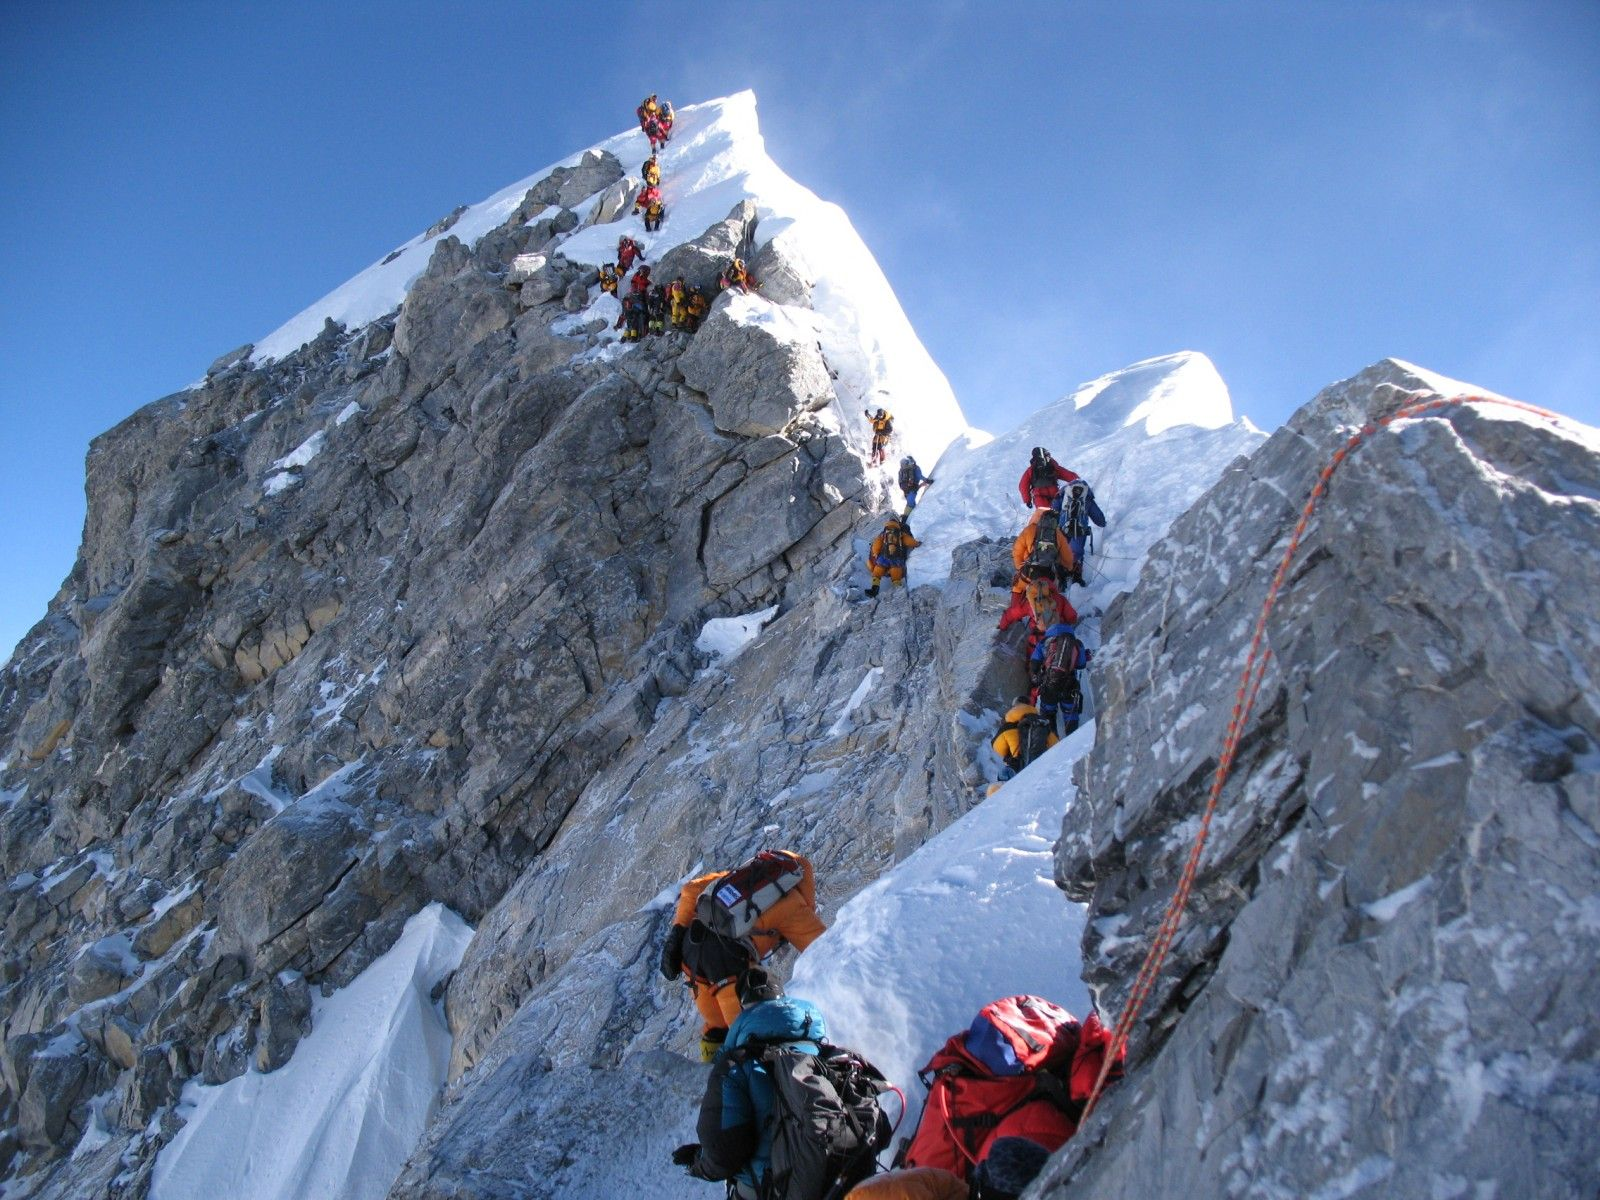 mountain climbing expeditions challenged - HD1600×1200